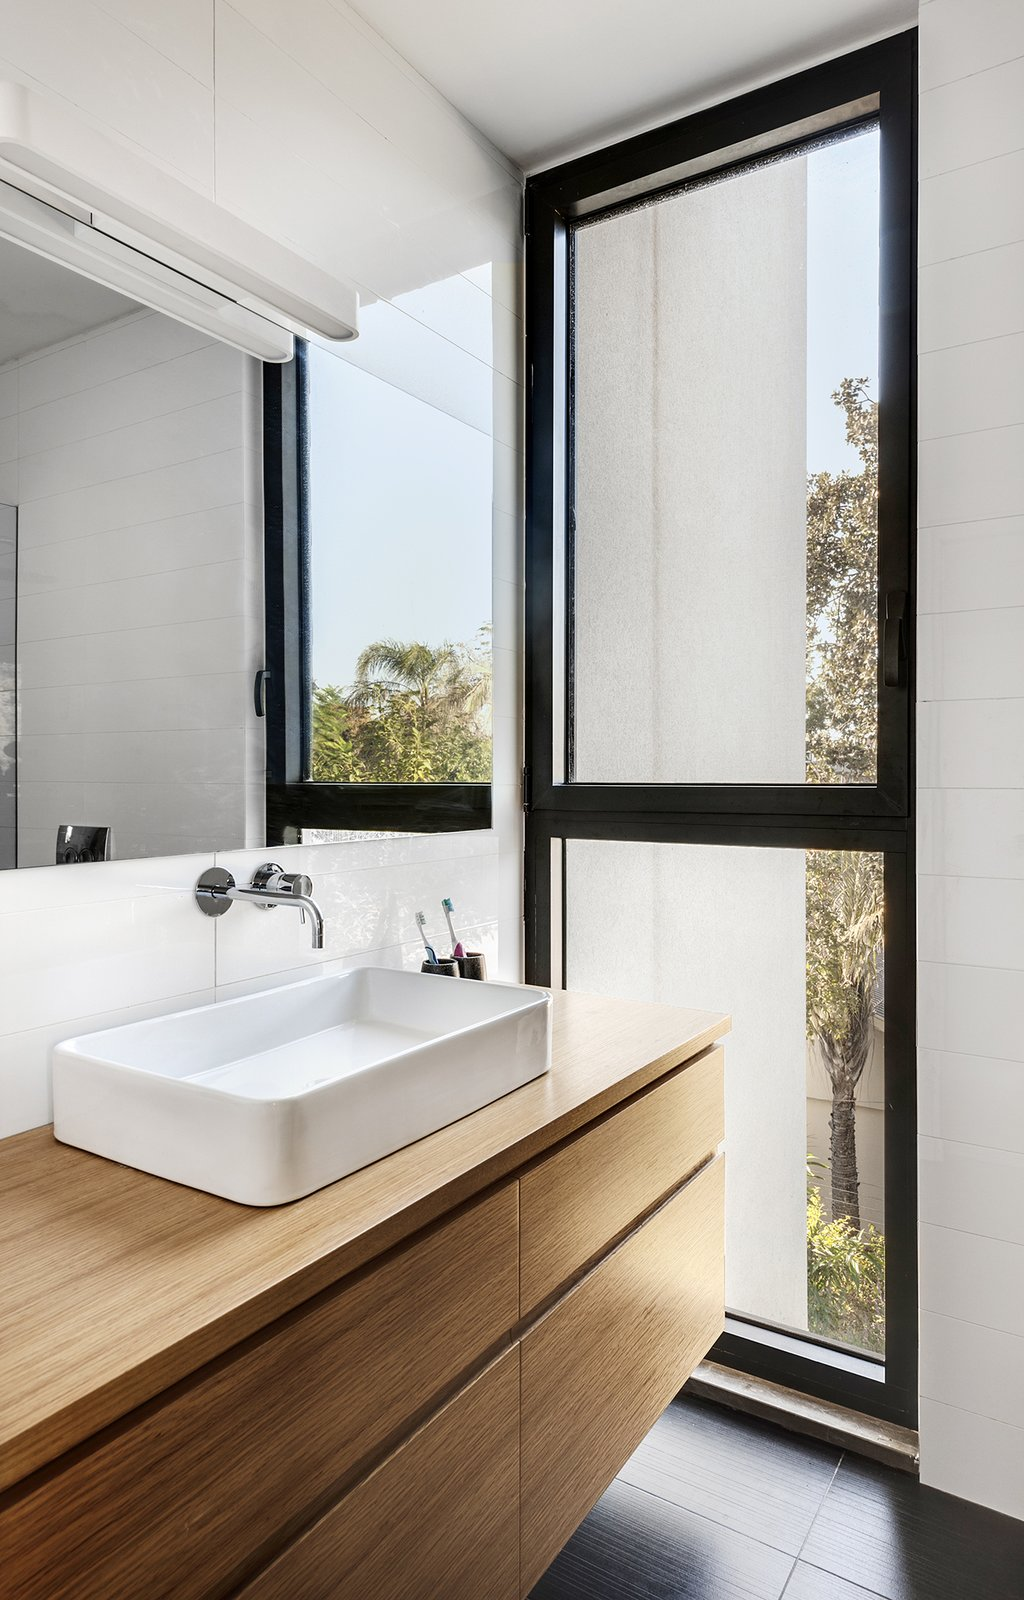 Bath Room, Porcelain Tile Floor, Vessel Sink, and Wood Counter Ravit Dvir Architecture and Design  The House in Harutzim